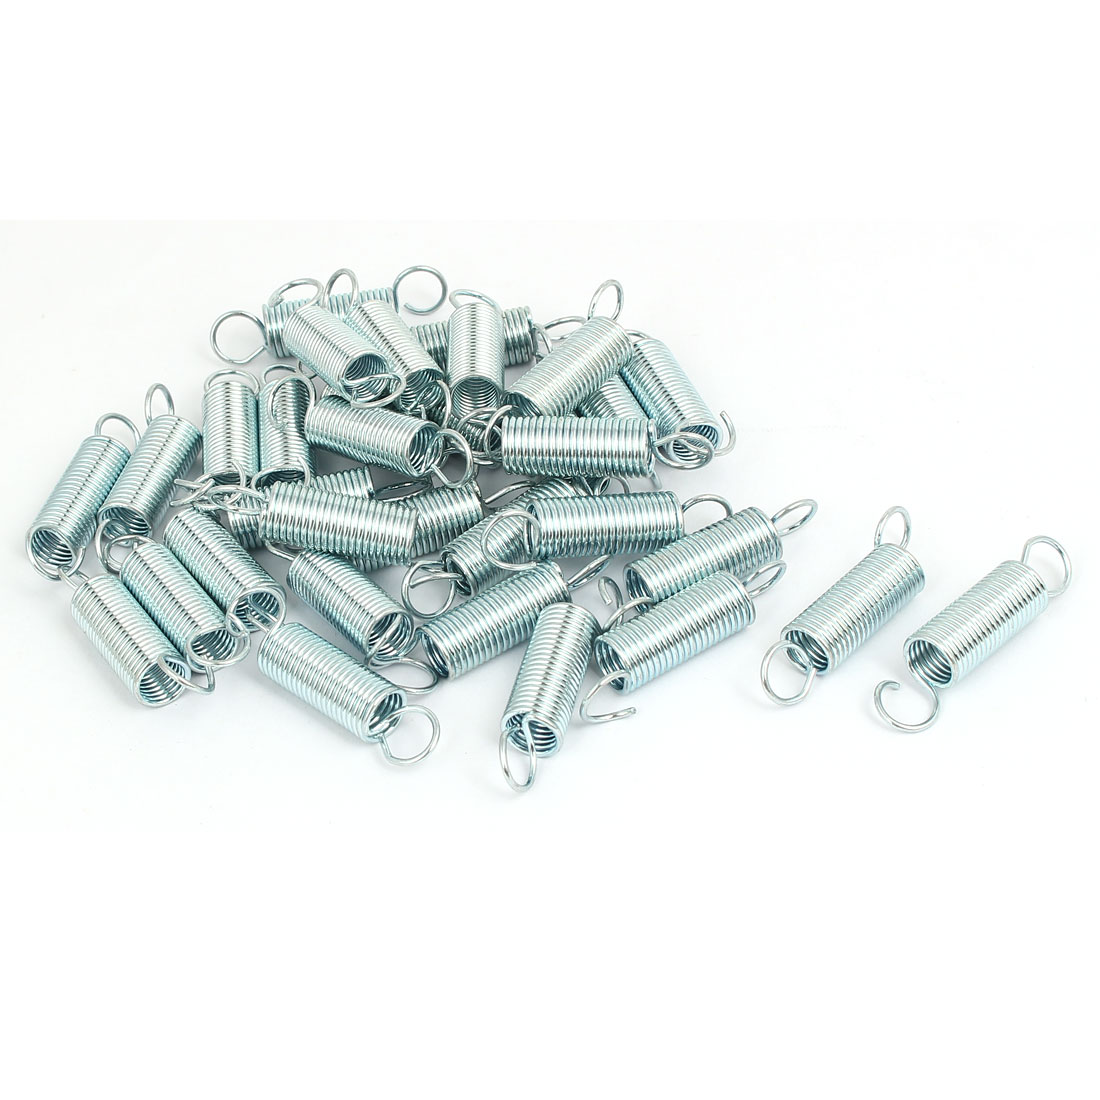 25mmx10.5mmx1.2mm Stainless Steel Dual Hook Tension Spring Silver Tone 33pcs